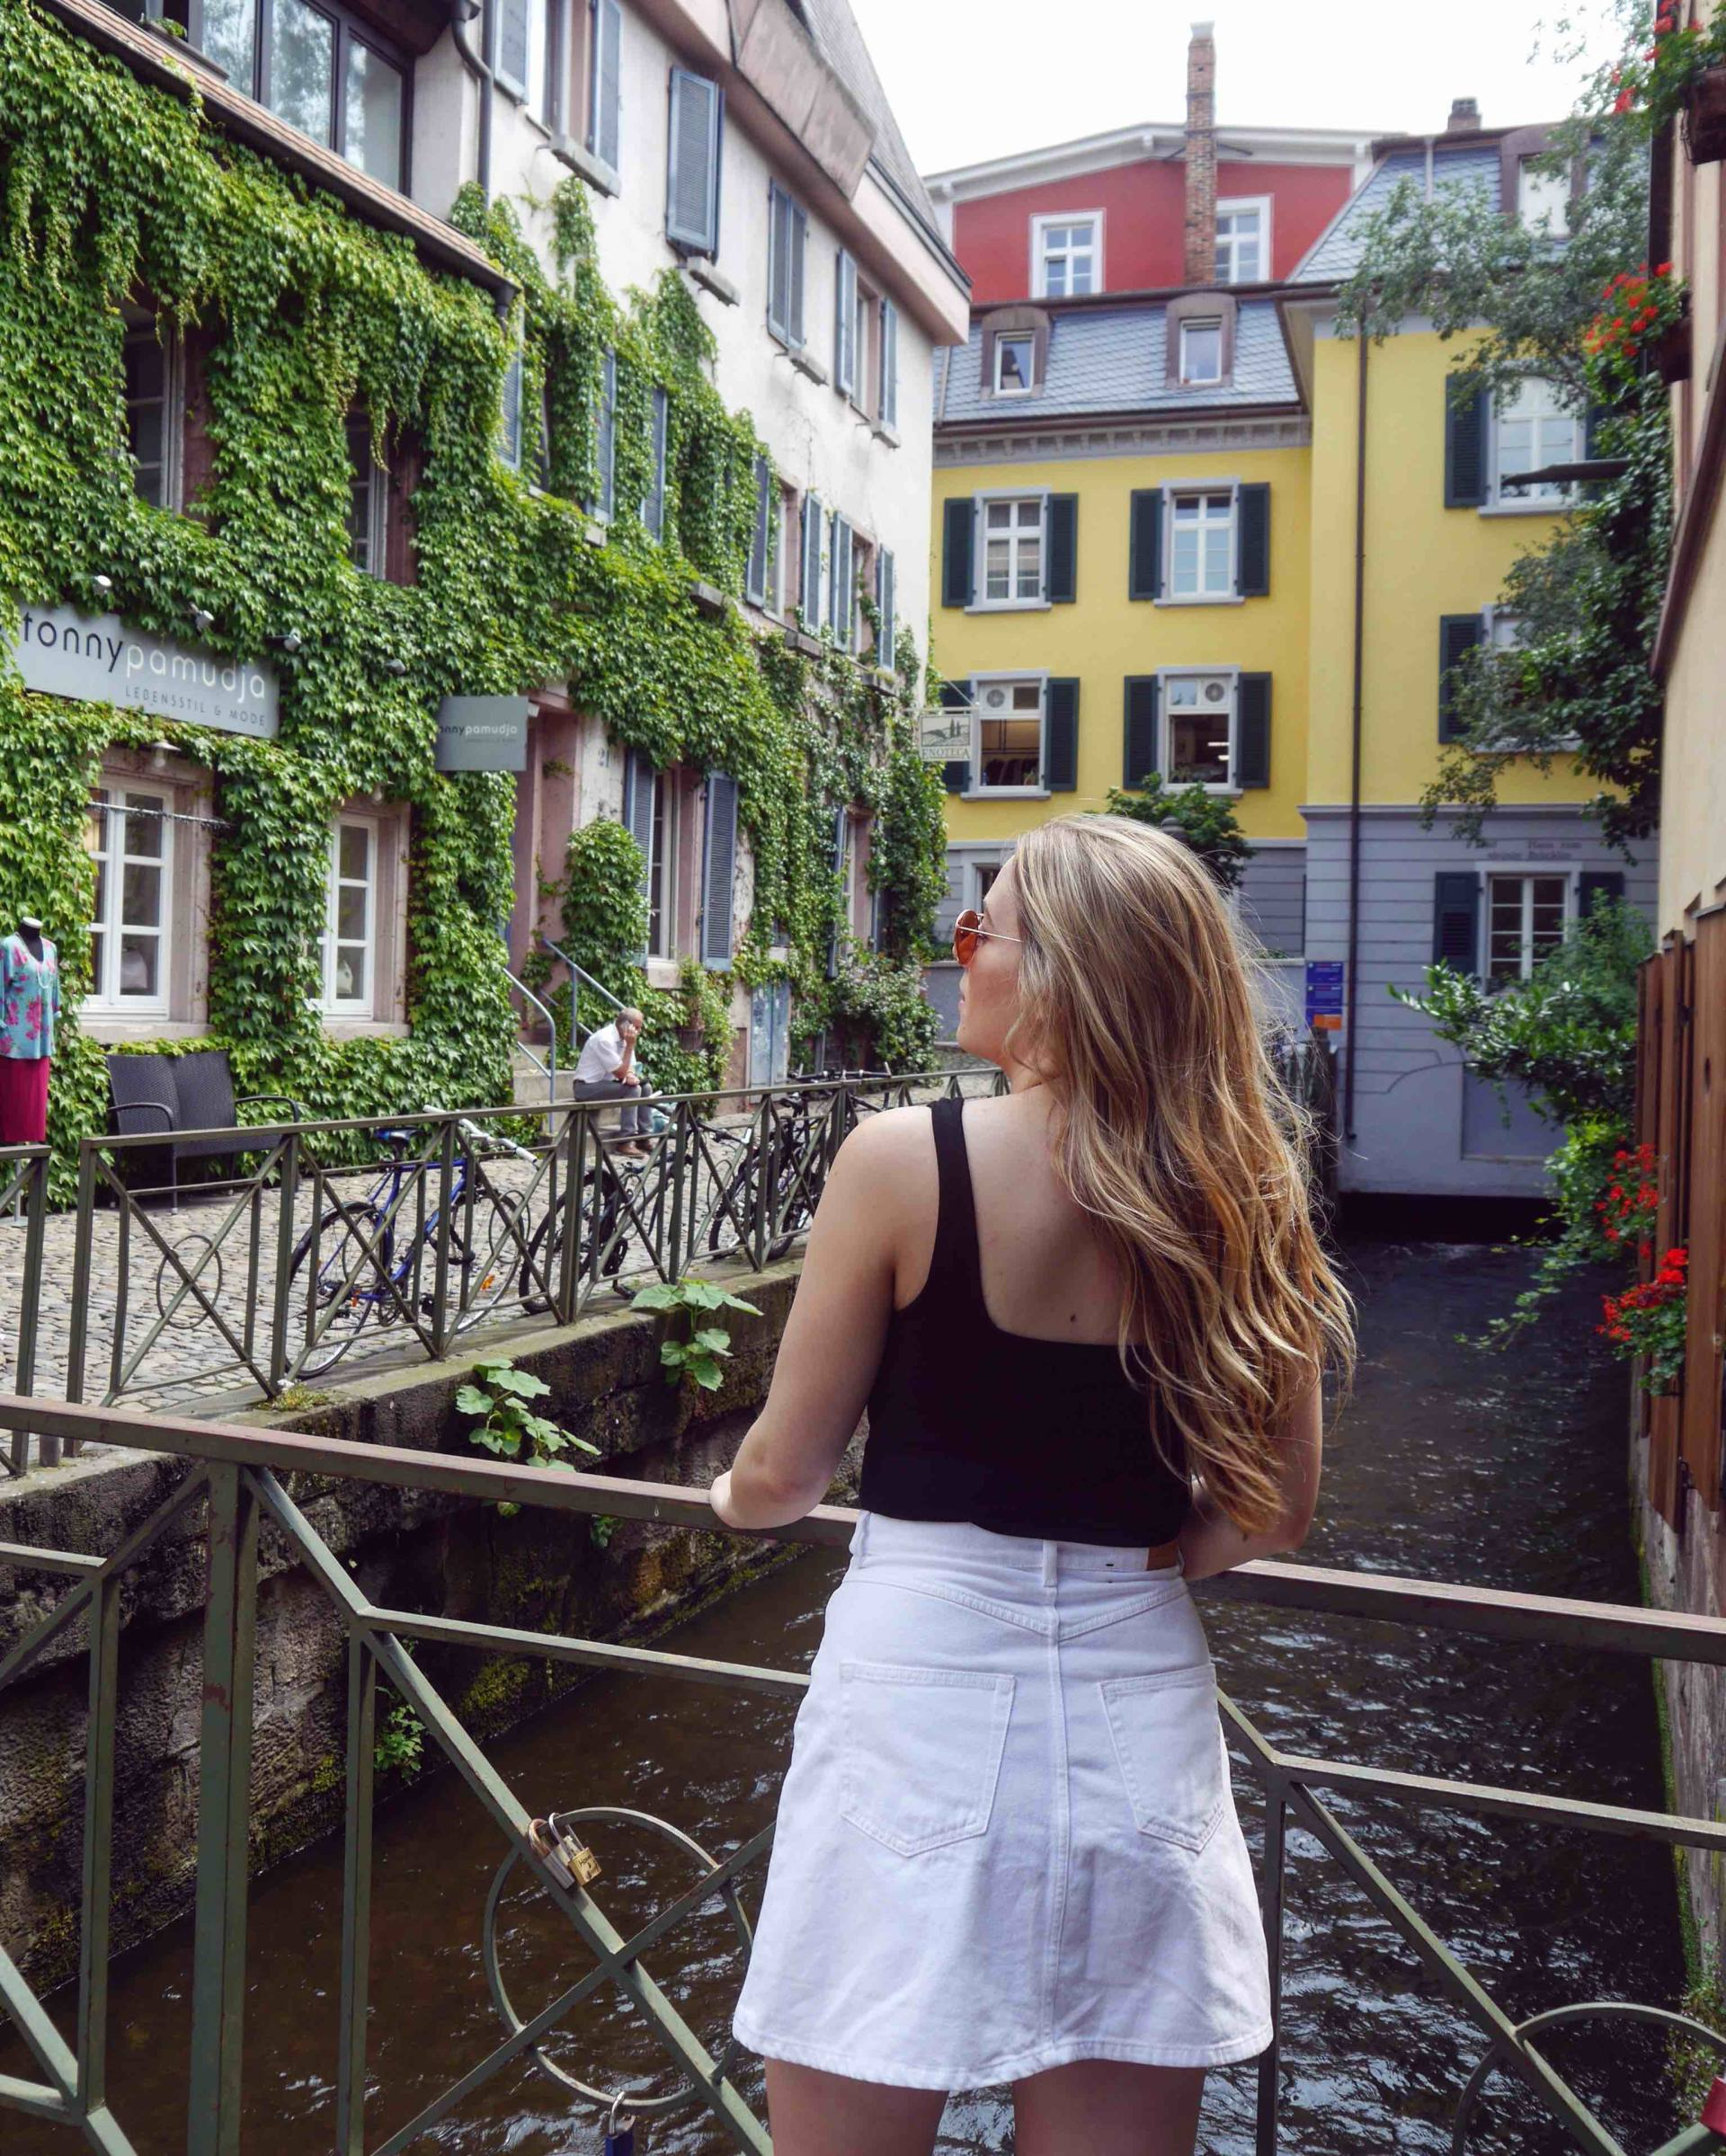 Gerberau | Most Instagrammable Places in Freiburg | The Travelista